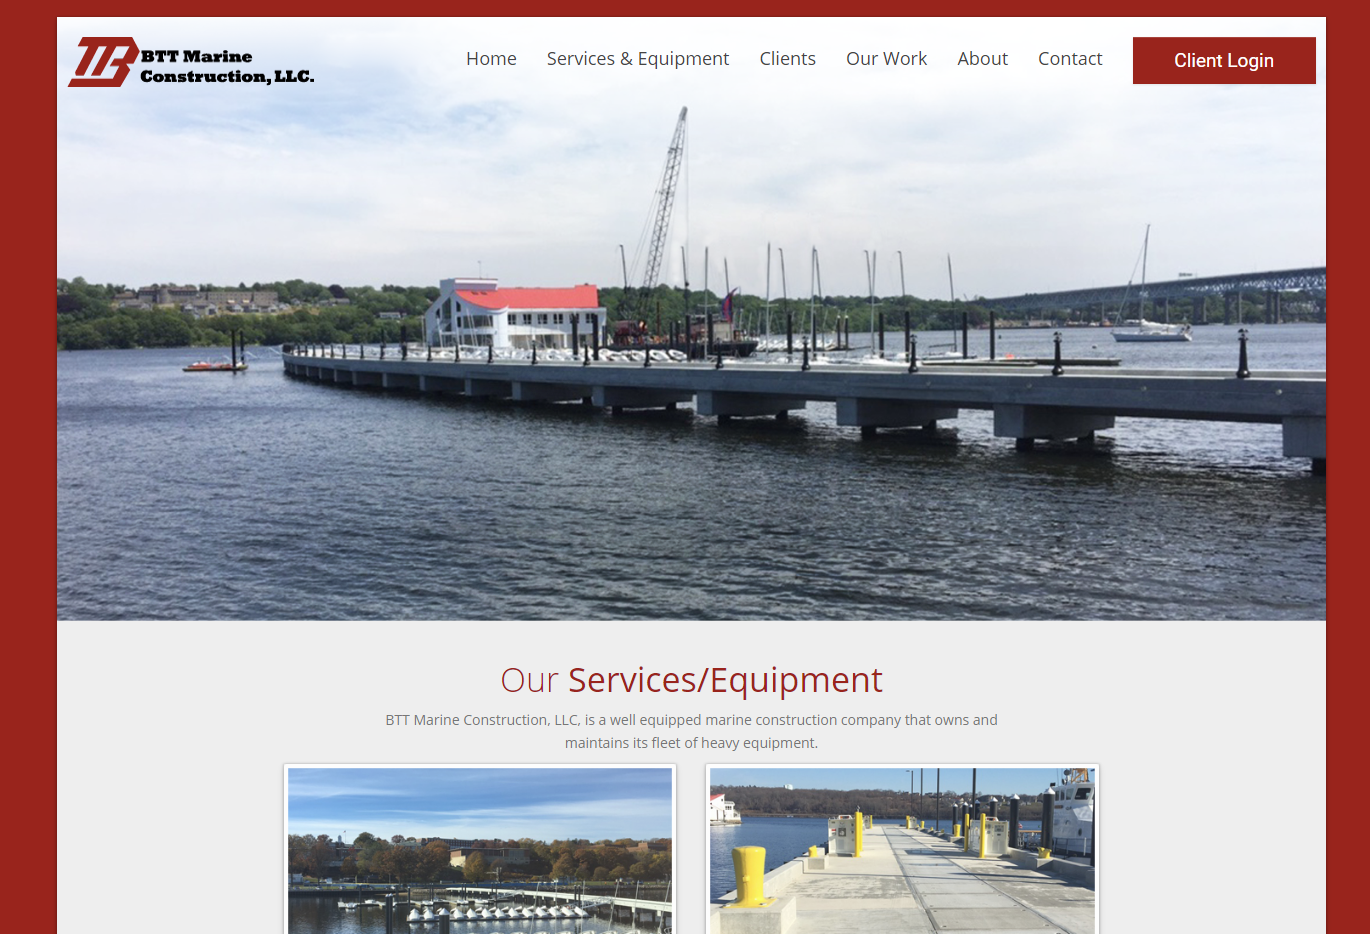 bttmarineconstruction.com